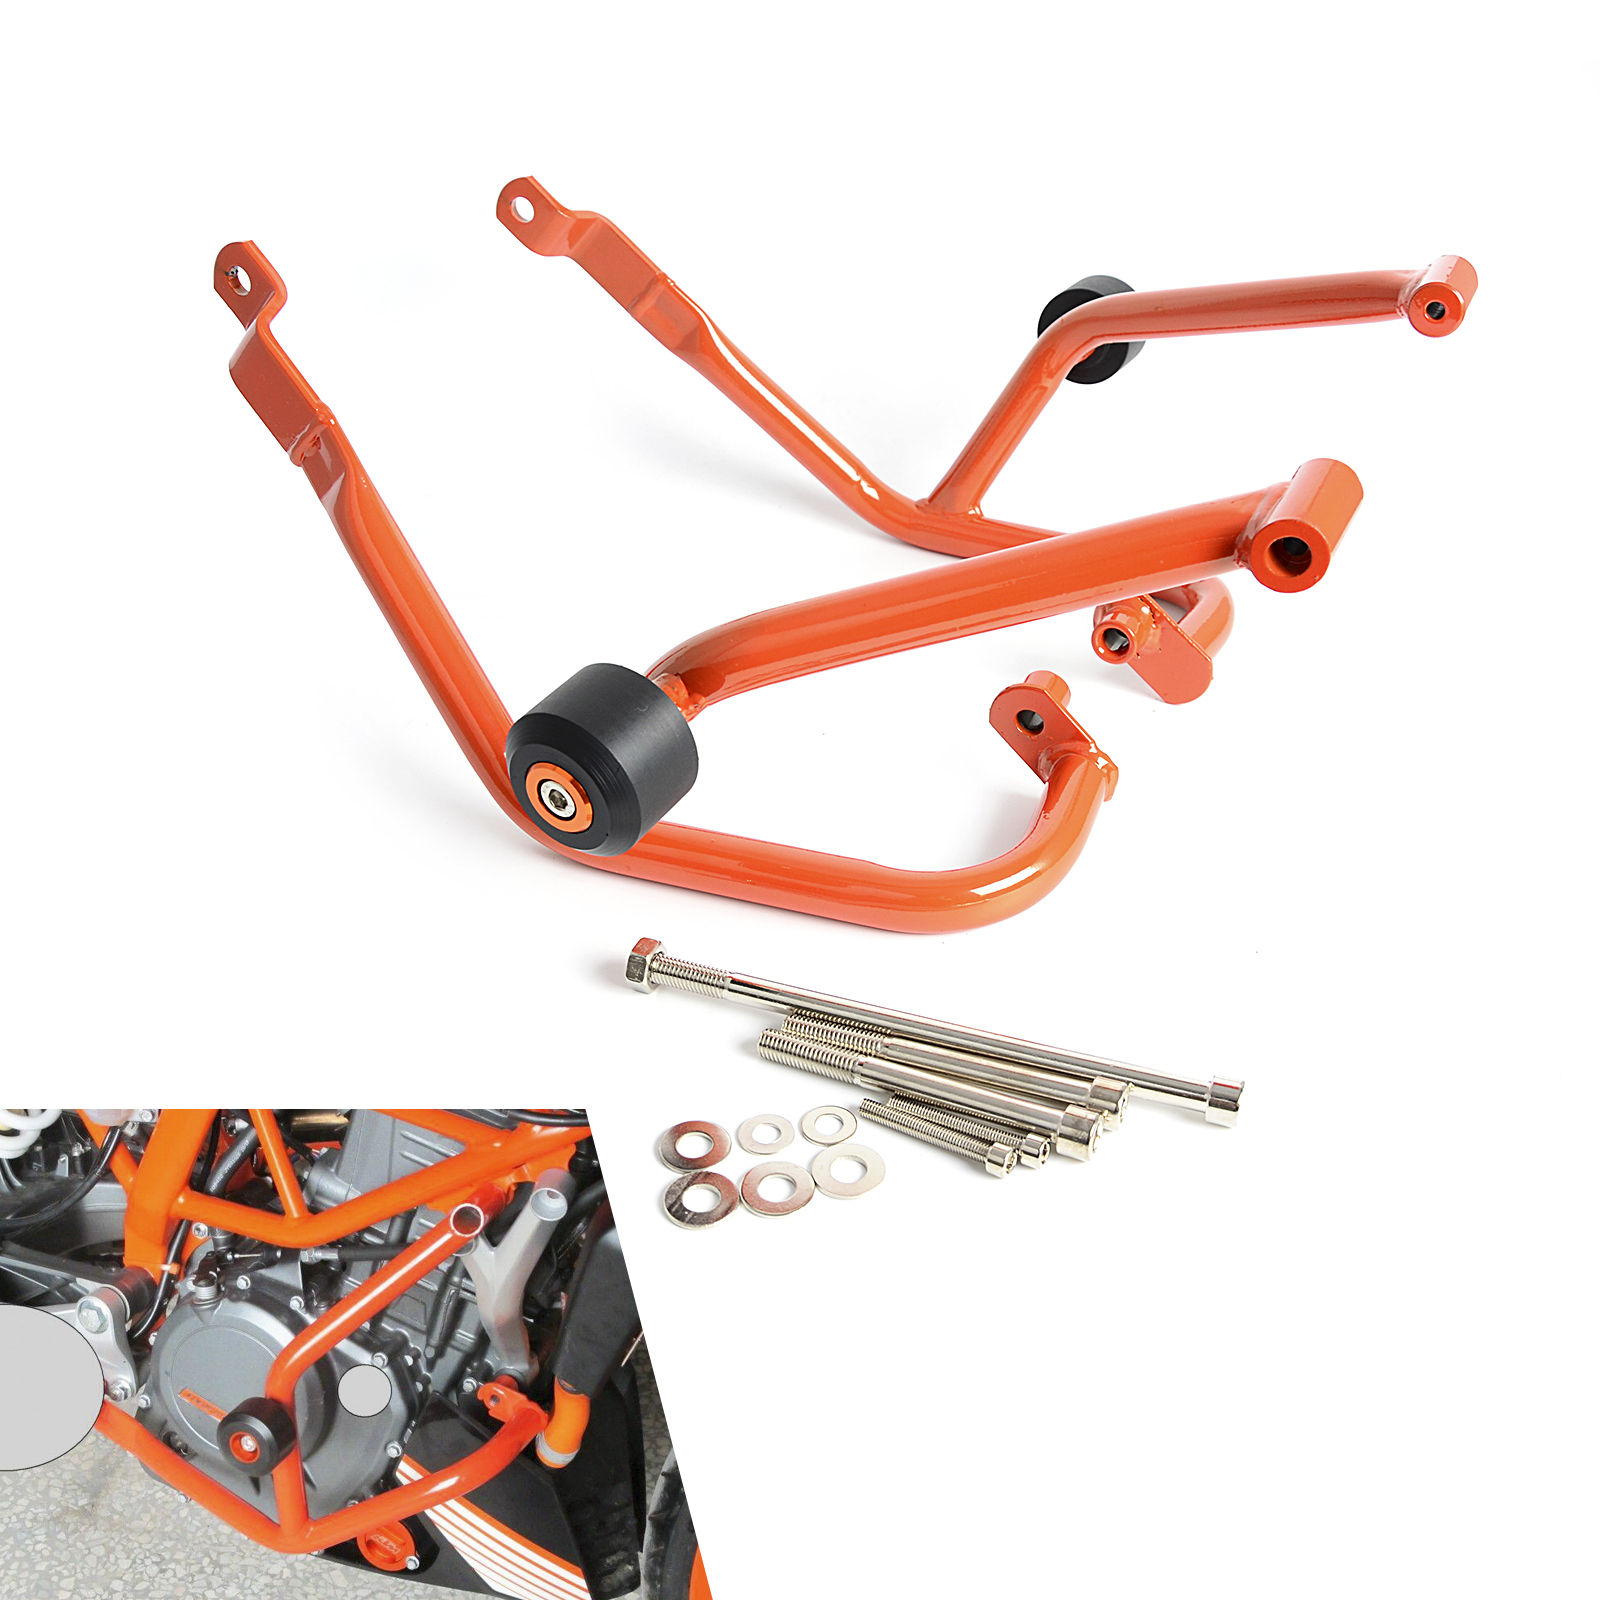 Motorcycle Engine Guard Crash Bars Frame Protector Bumper For KTM 125 200 Duke 2011 2012 2013 2014 2015 NEW motorcycle engine guard crash bars frame protector bumper for ktm 125 200 duke 2011 2012 2013 2014 2015 new